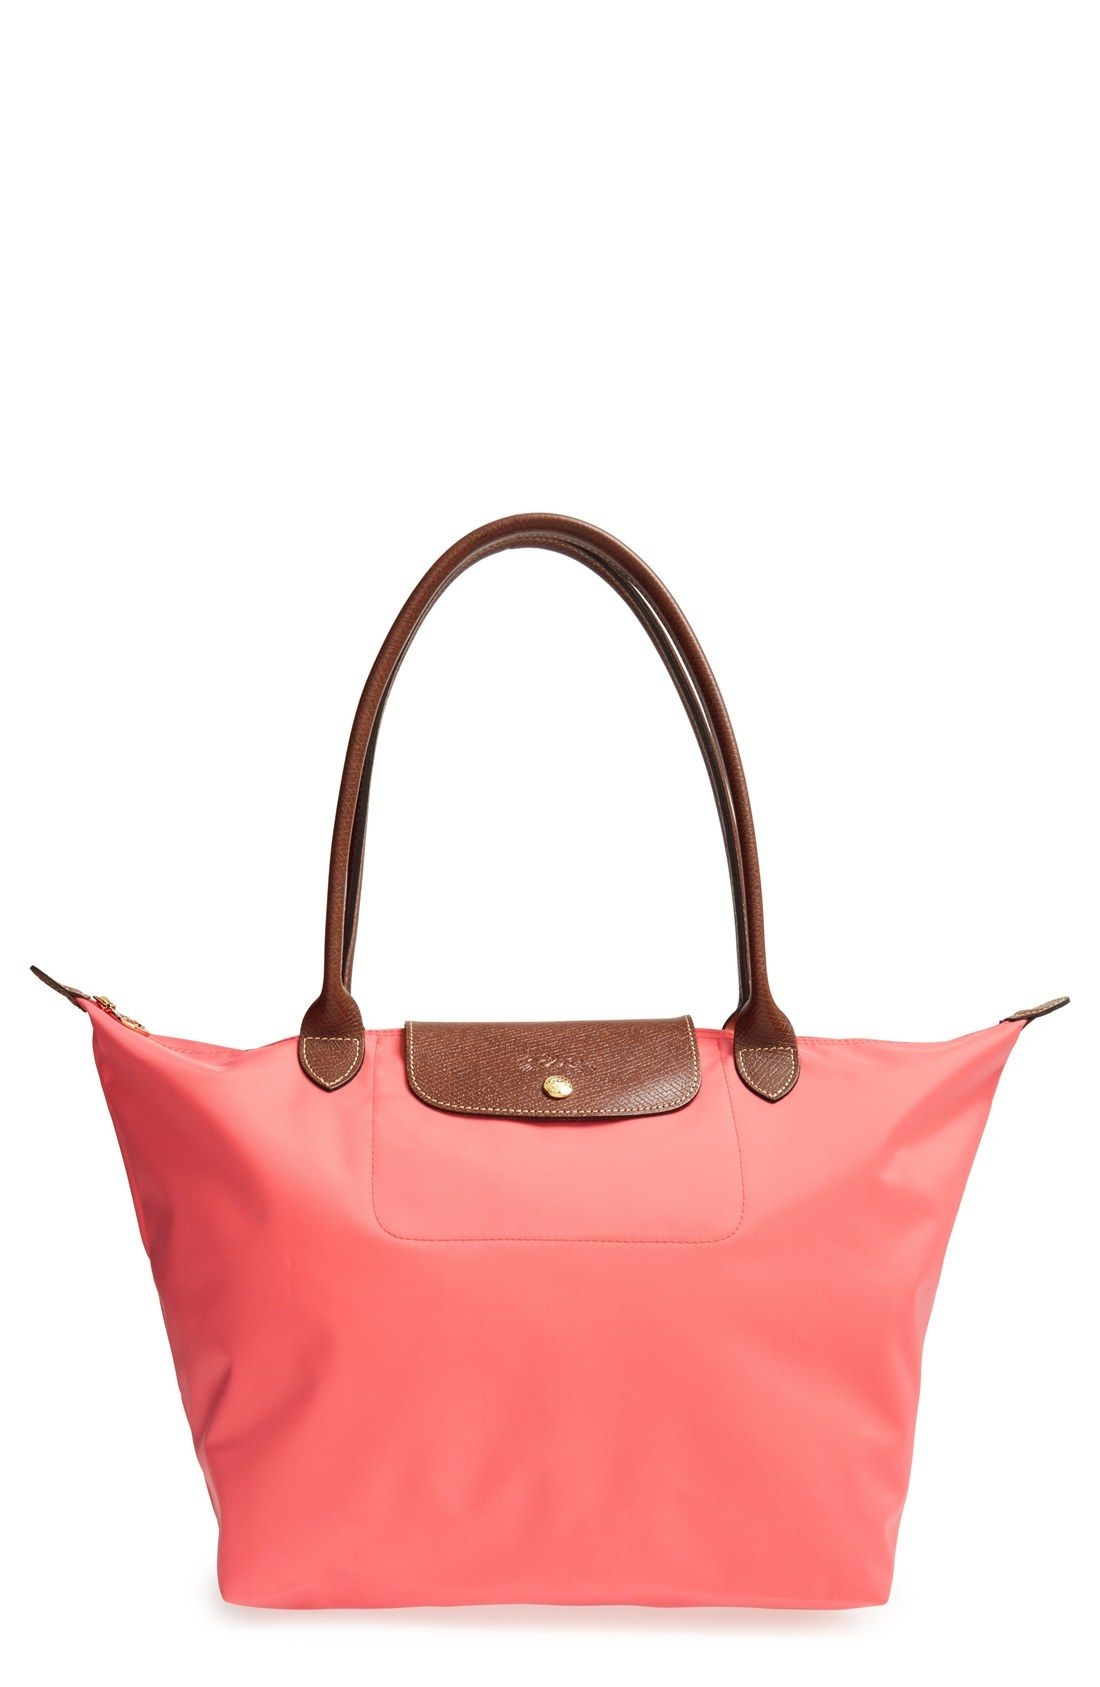 94f414107a63 Coral Longchamp tote is the perfect travel bag.